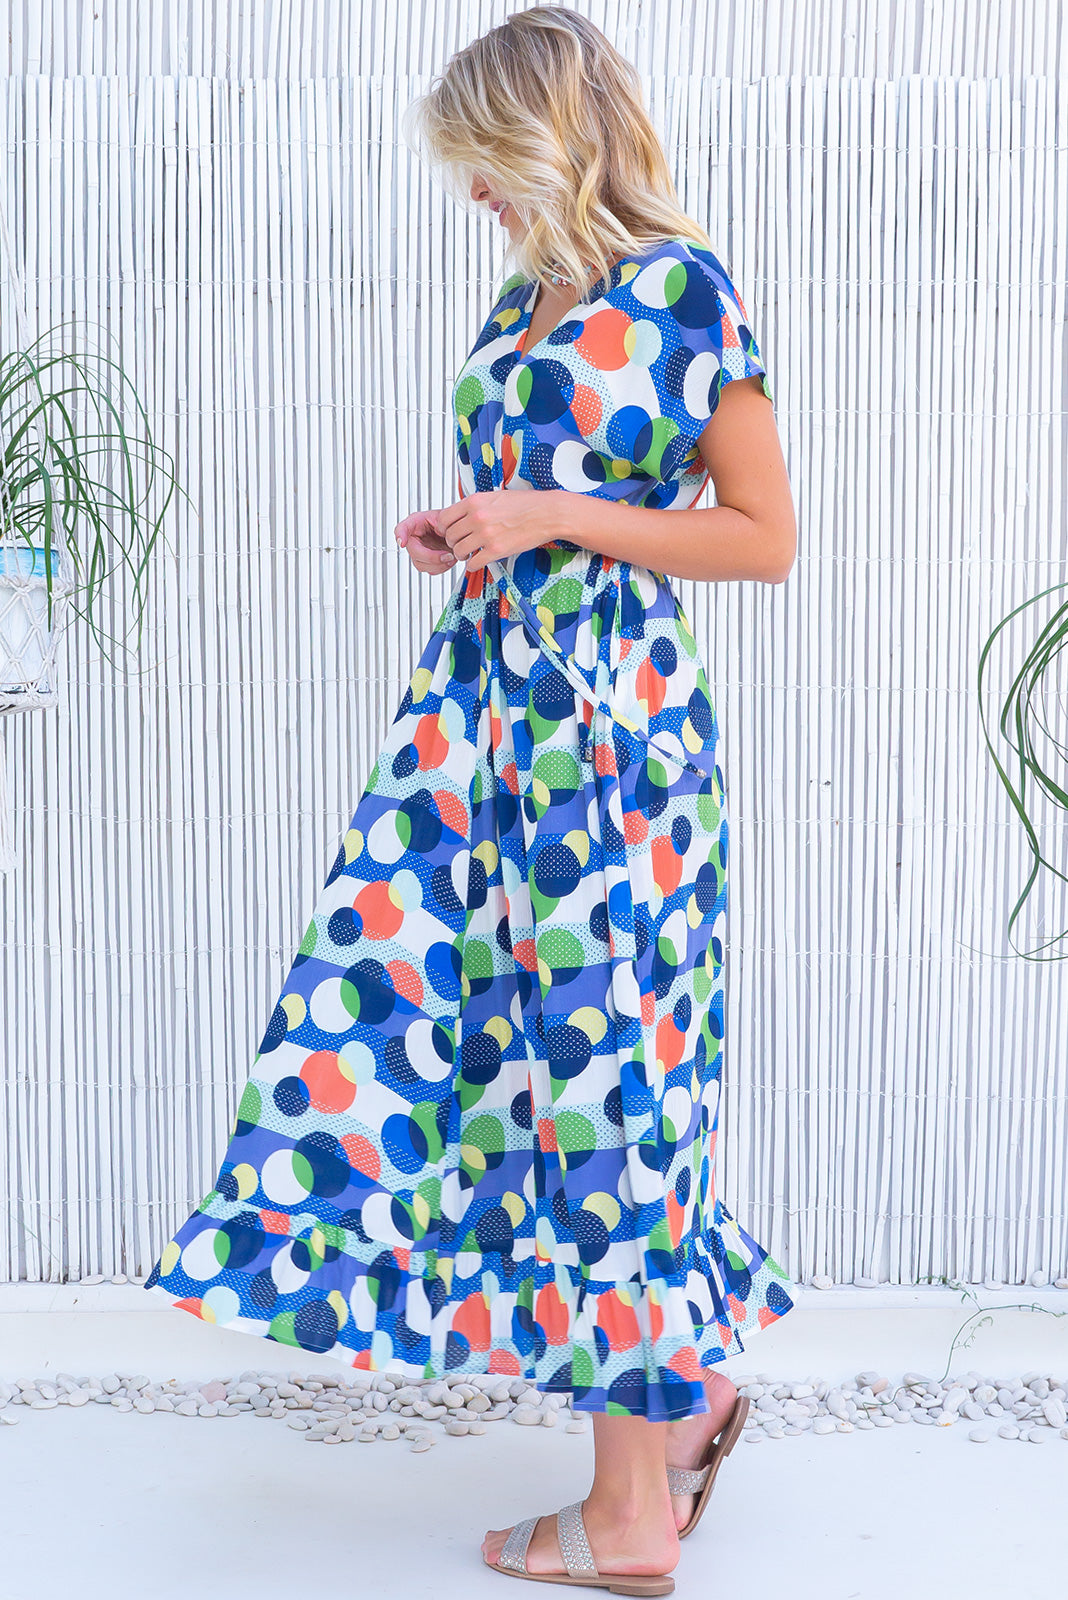 The Willow Spotted On Maxi Dress is a V-neck with lace feature Maxi Dress featuring cap sleeves, elasticated waist with adjustable drawstring, frill hem and crinkle textured 100% viscose in bright, retro spot print in blue, white, navy, orange, yellow and green.